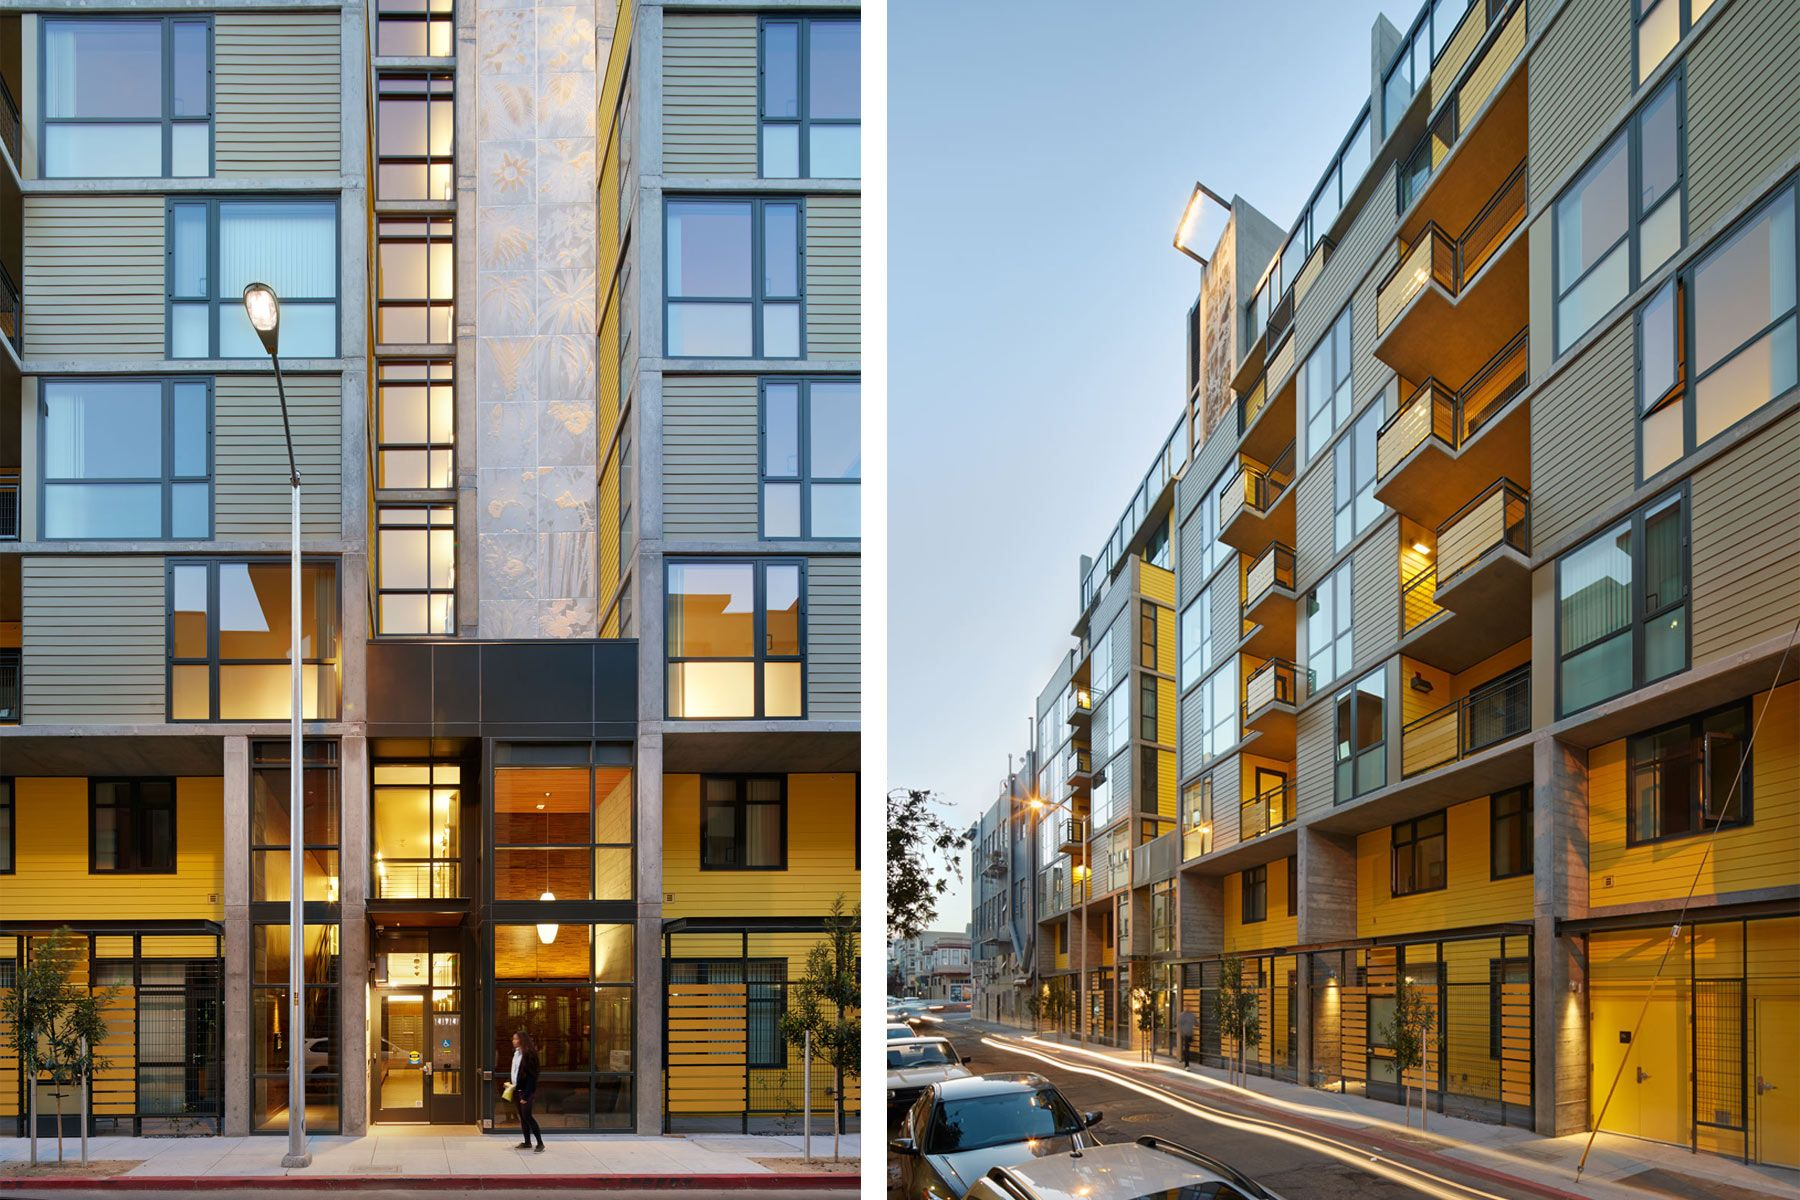 474 Natoma Apartments is an affordable family housing ...